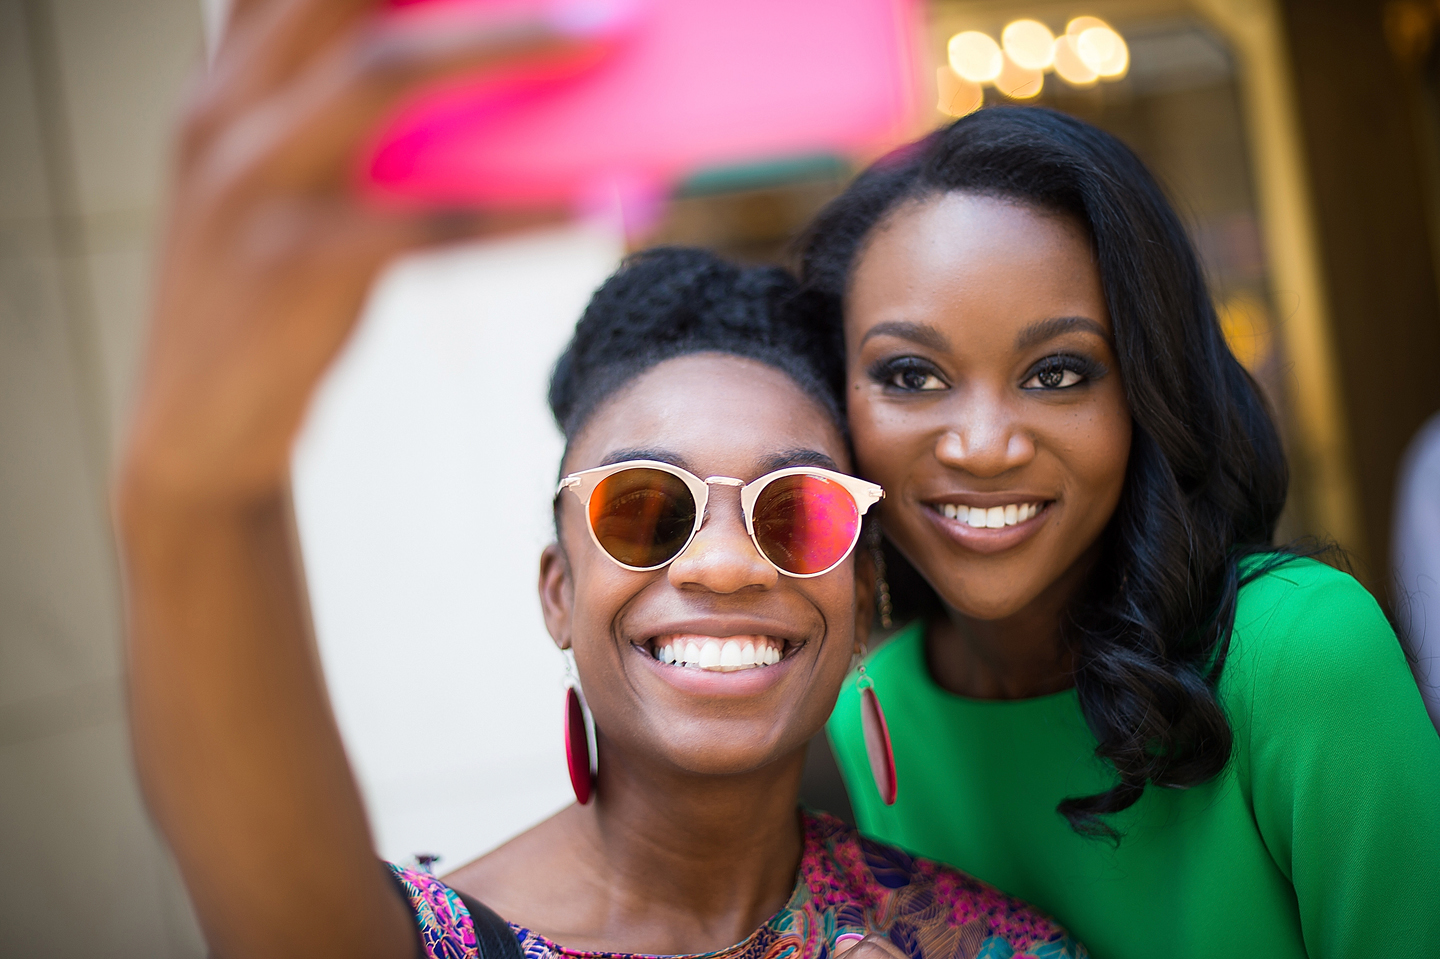 Miss USA 2016 Deshauna Barber (R) poses for a selfie with a fan in Midtown on June 7, 2016 in New York City.